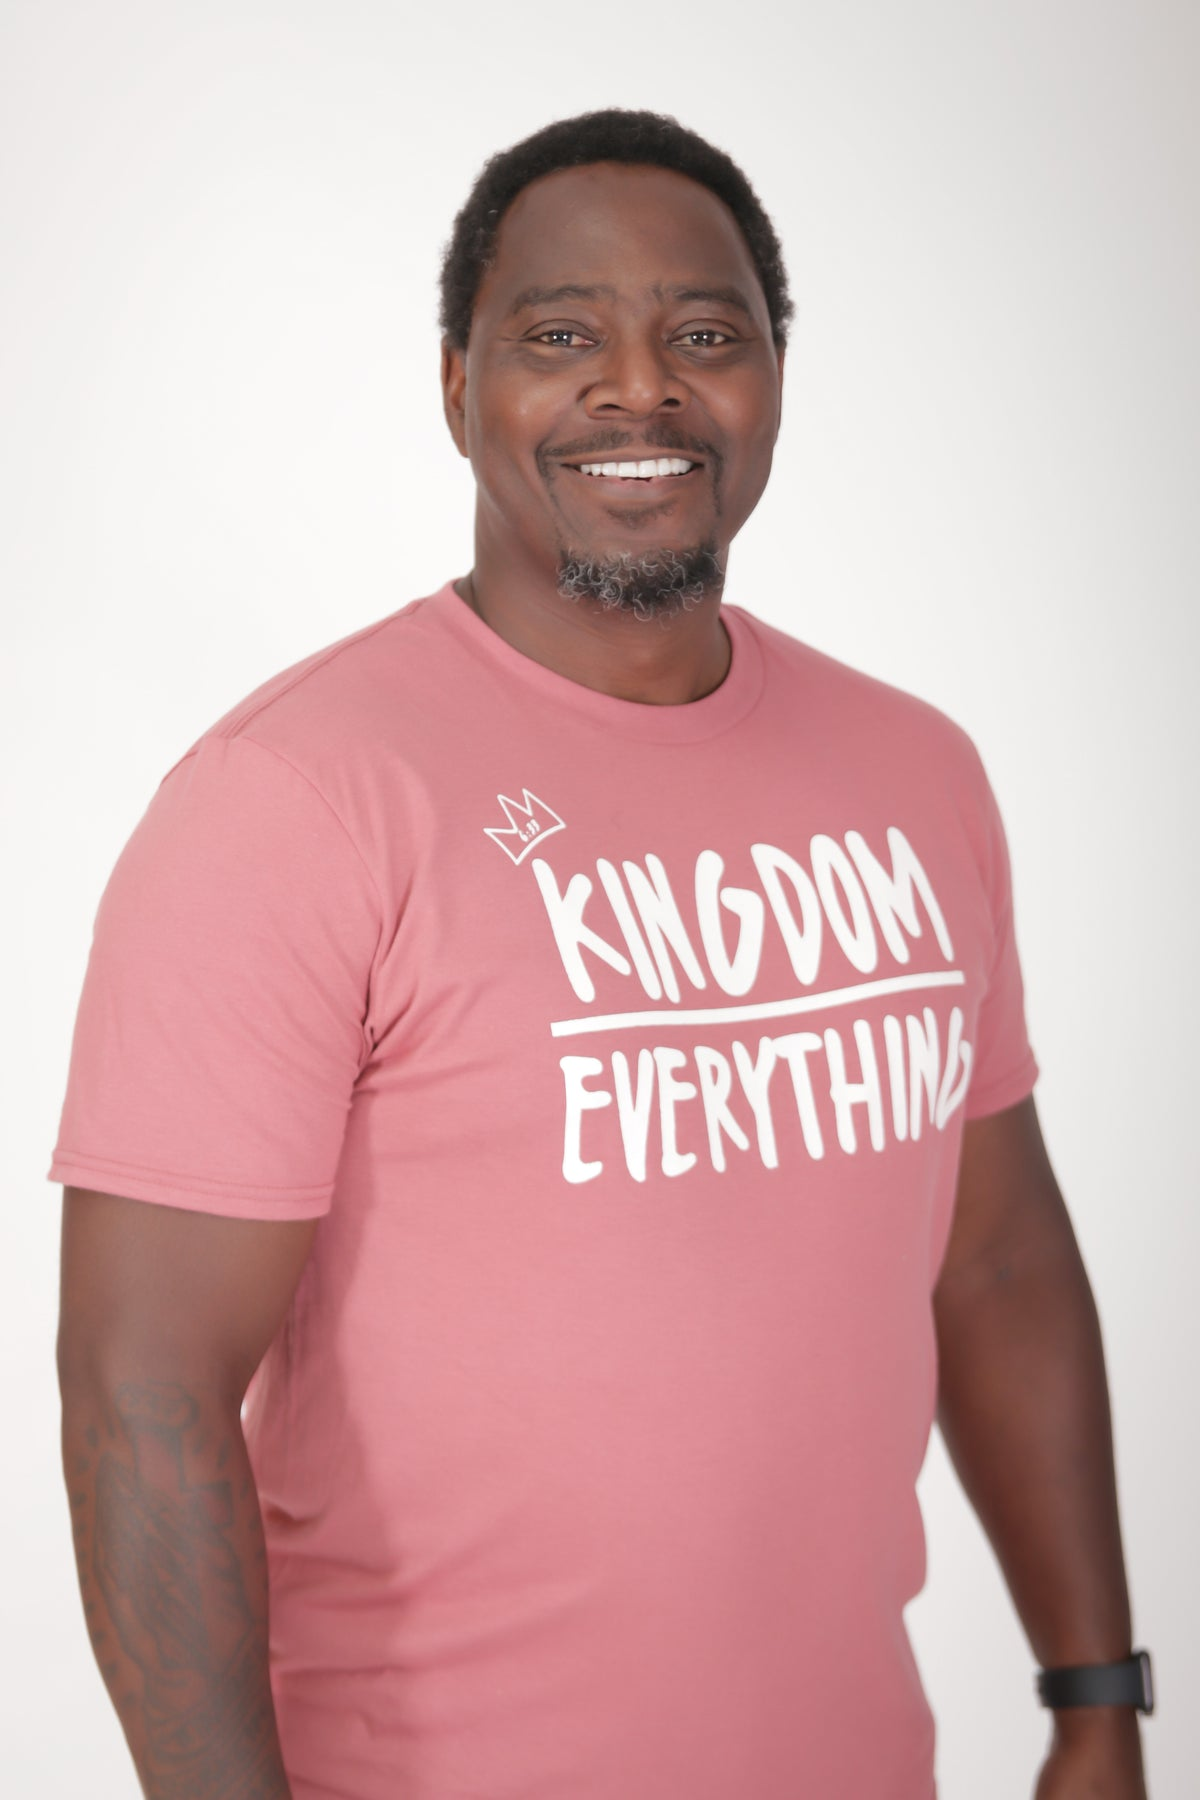 Kingdom Over Everything T-shirt